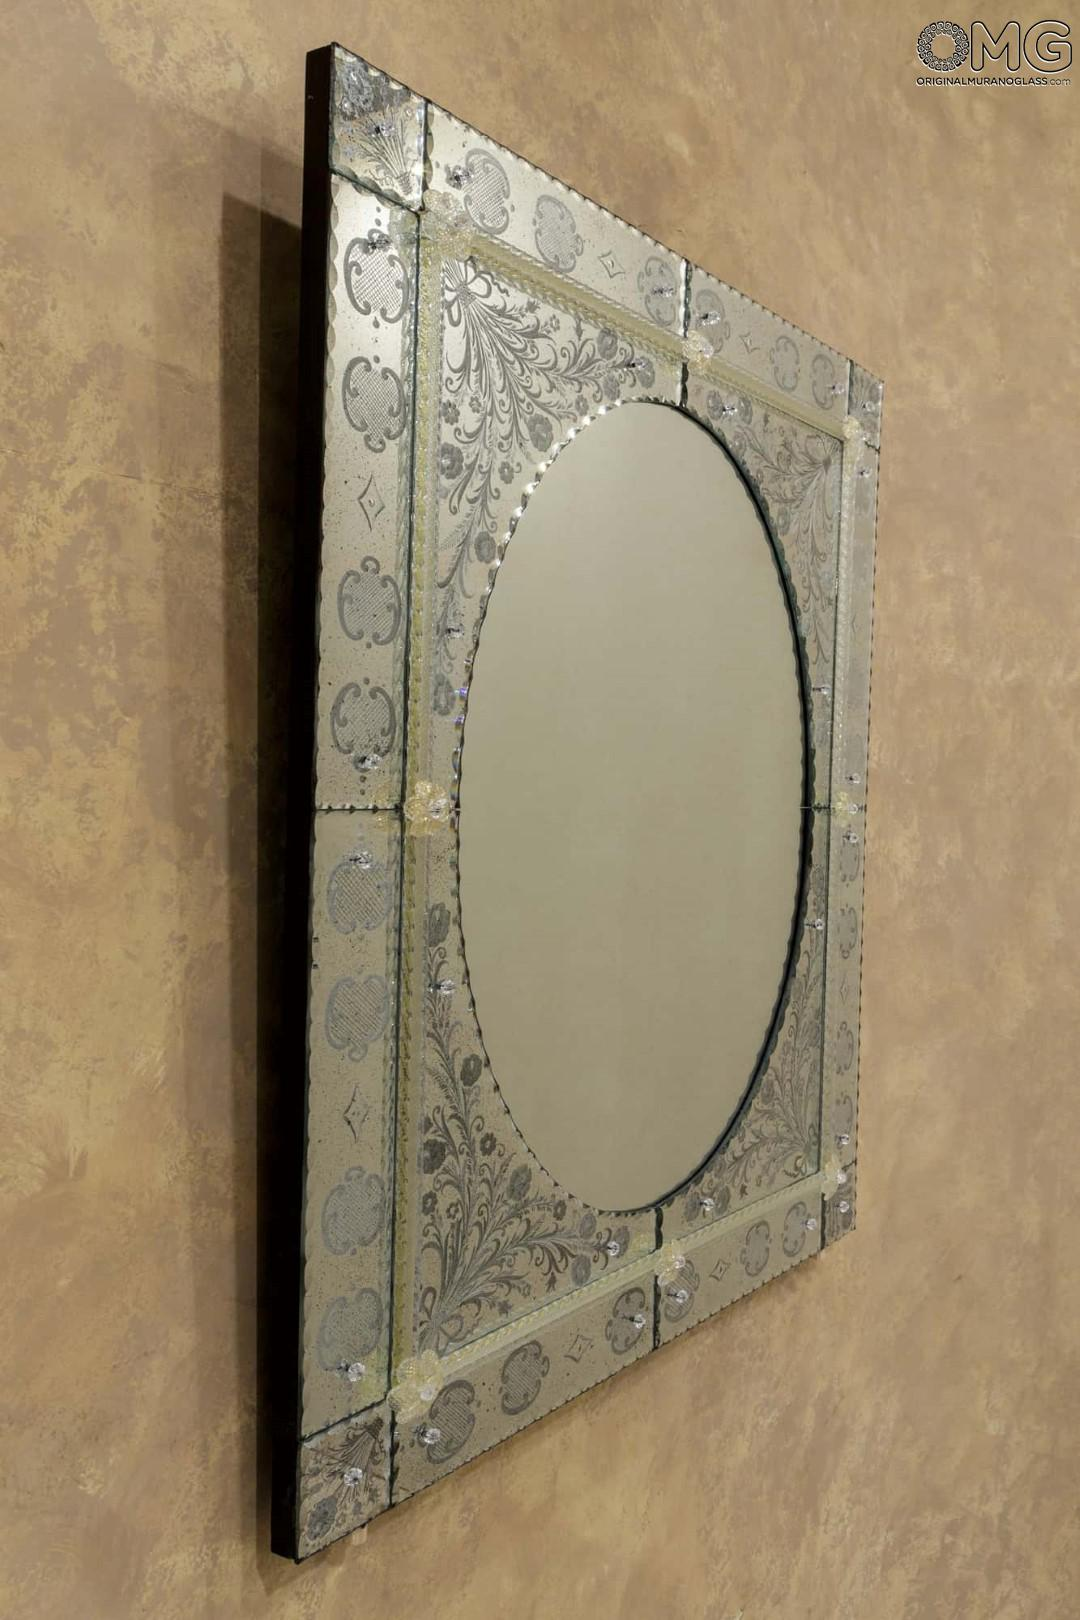 Spring Wall Venetian Mirror Engraved With Murano Glass